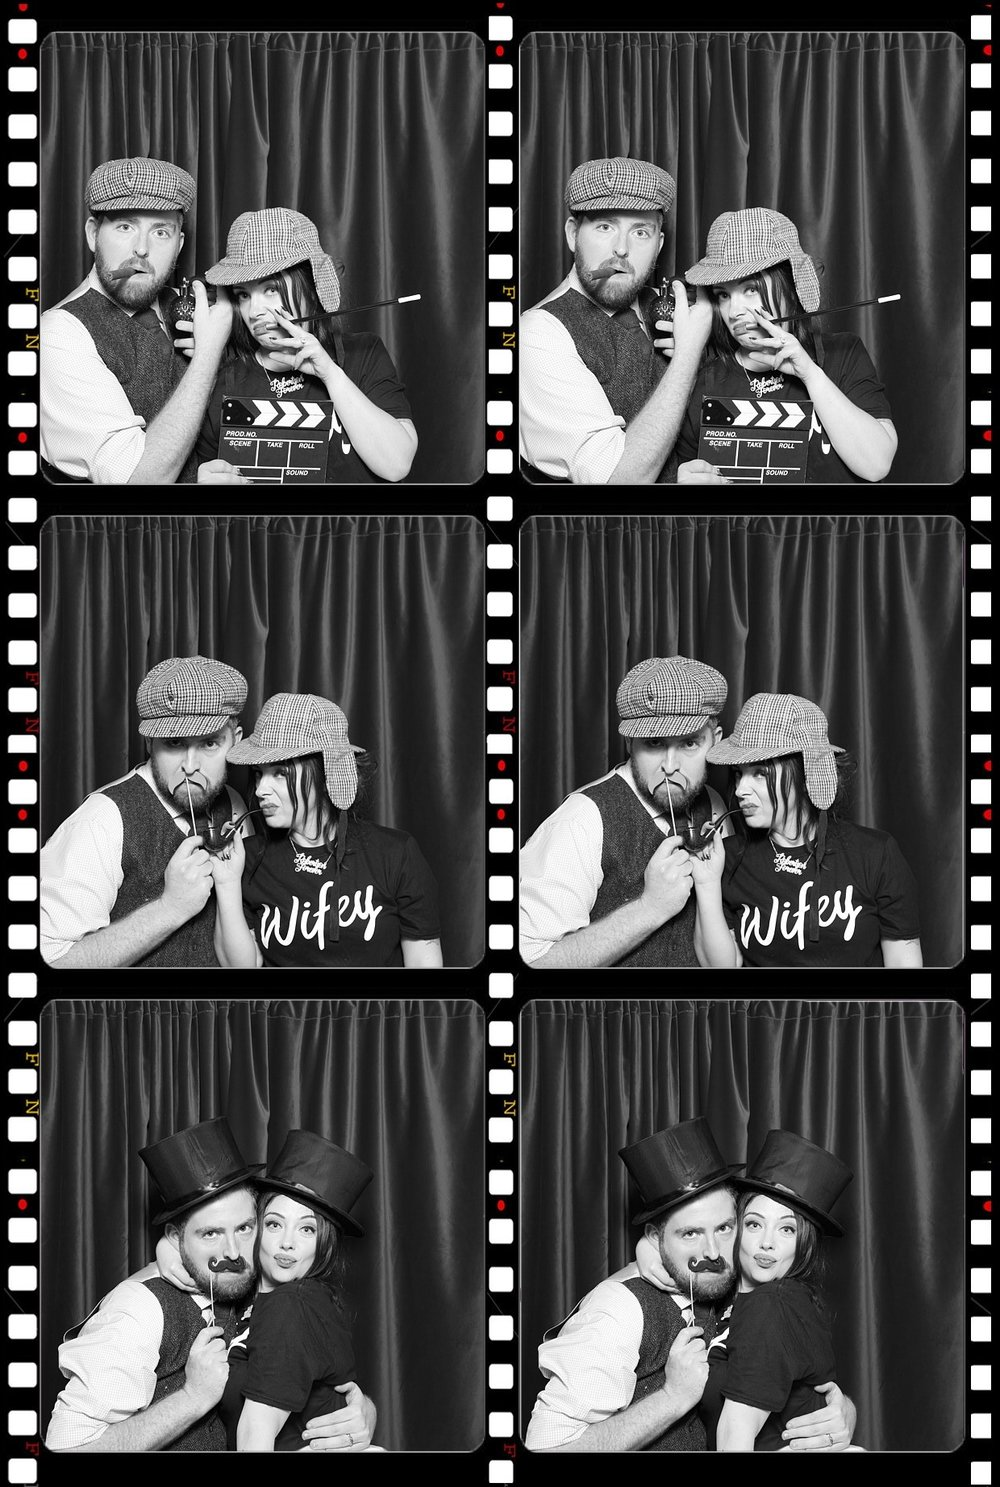 Props to the wonderful  Bygone Photo Booth  for these ridiculous photos of me & my wife.